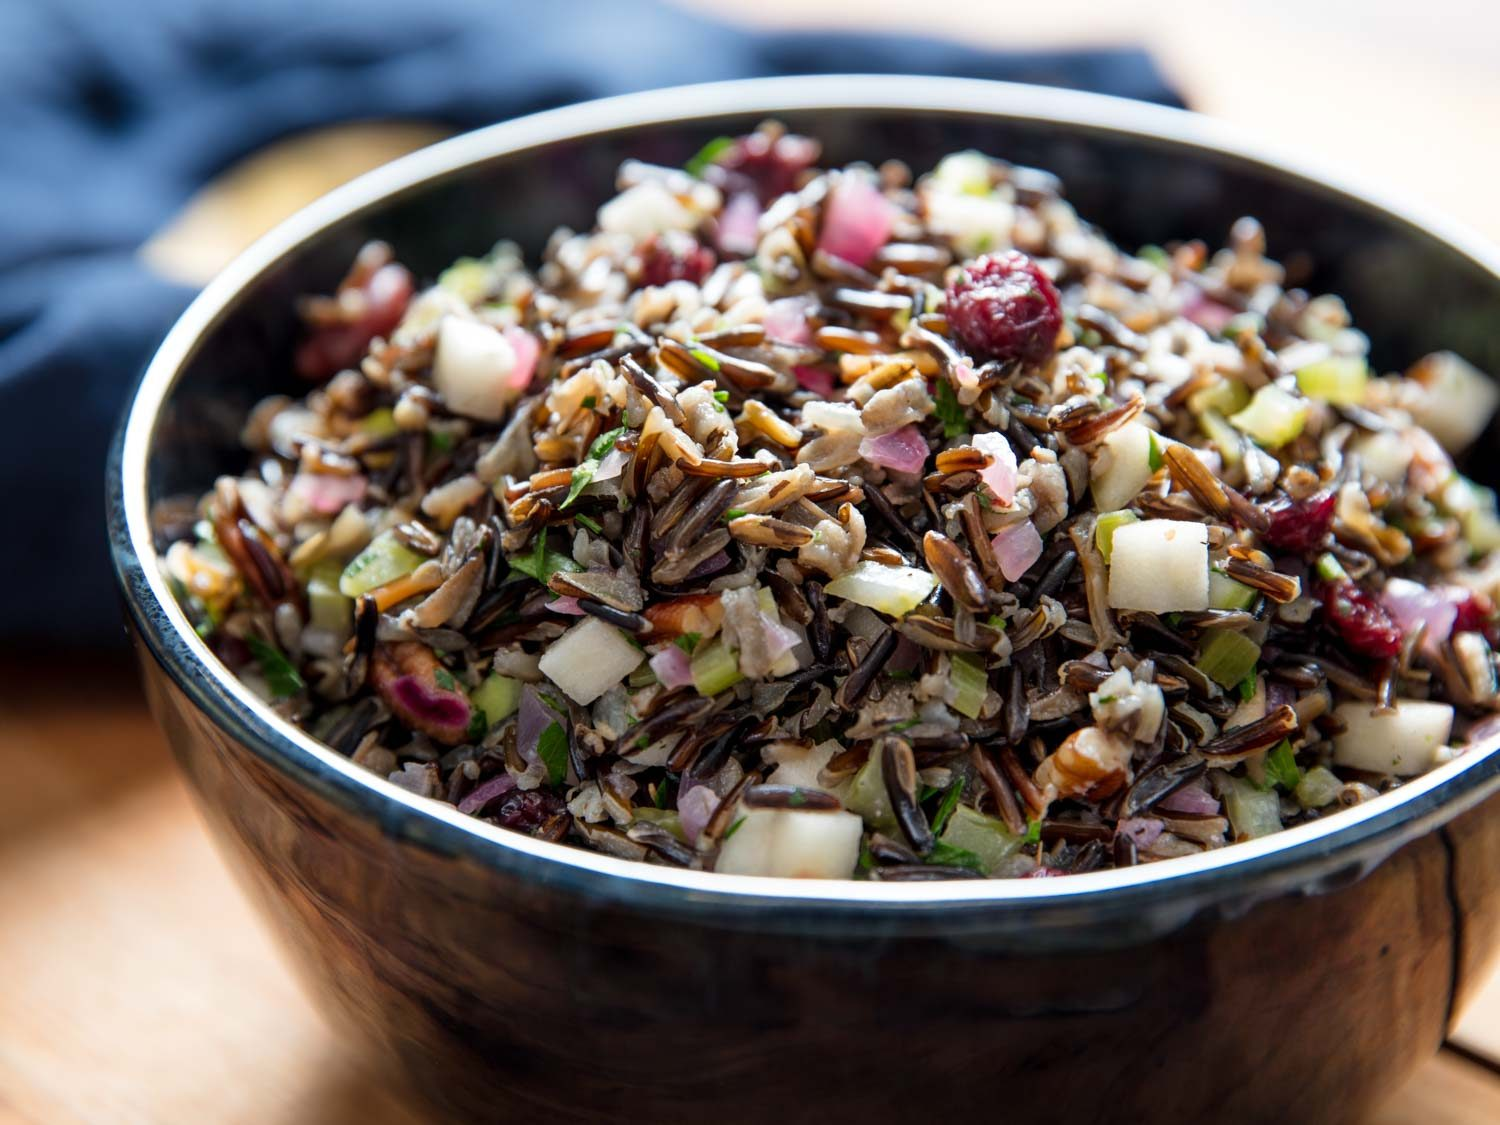 Wild Rice Salad With Dried Cranberries, Pickled Apples, and Pecans